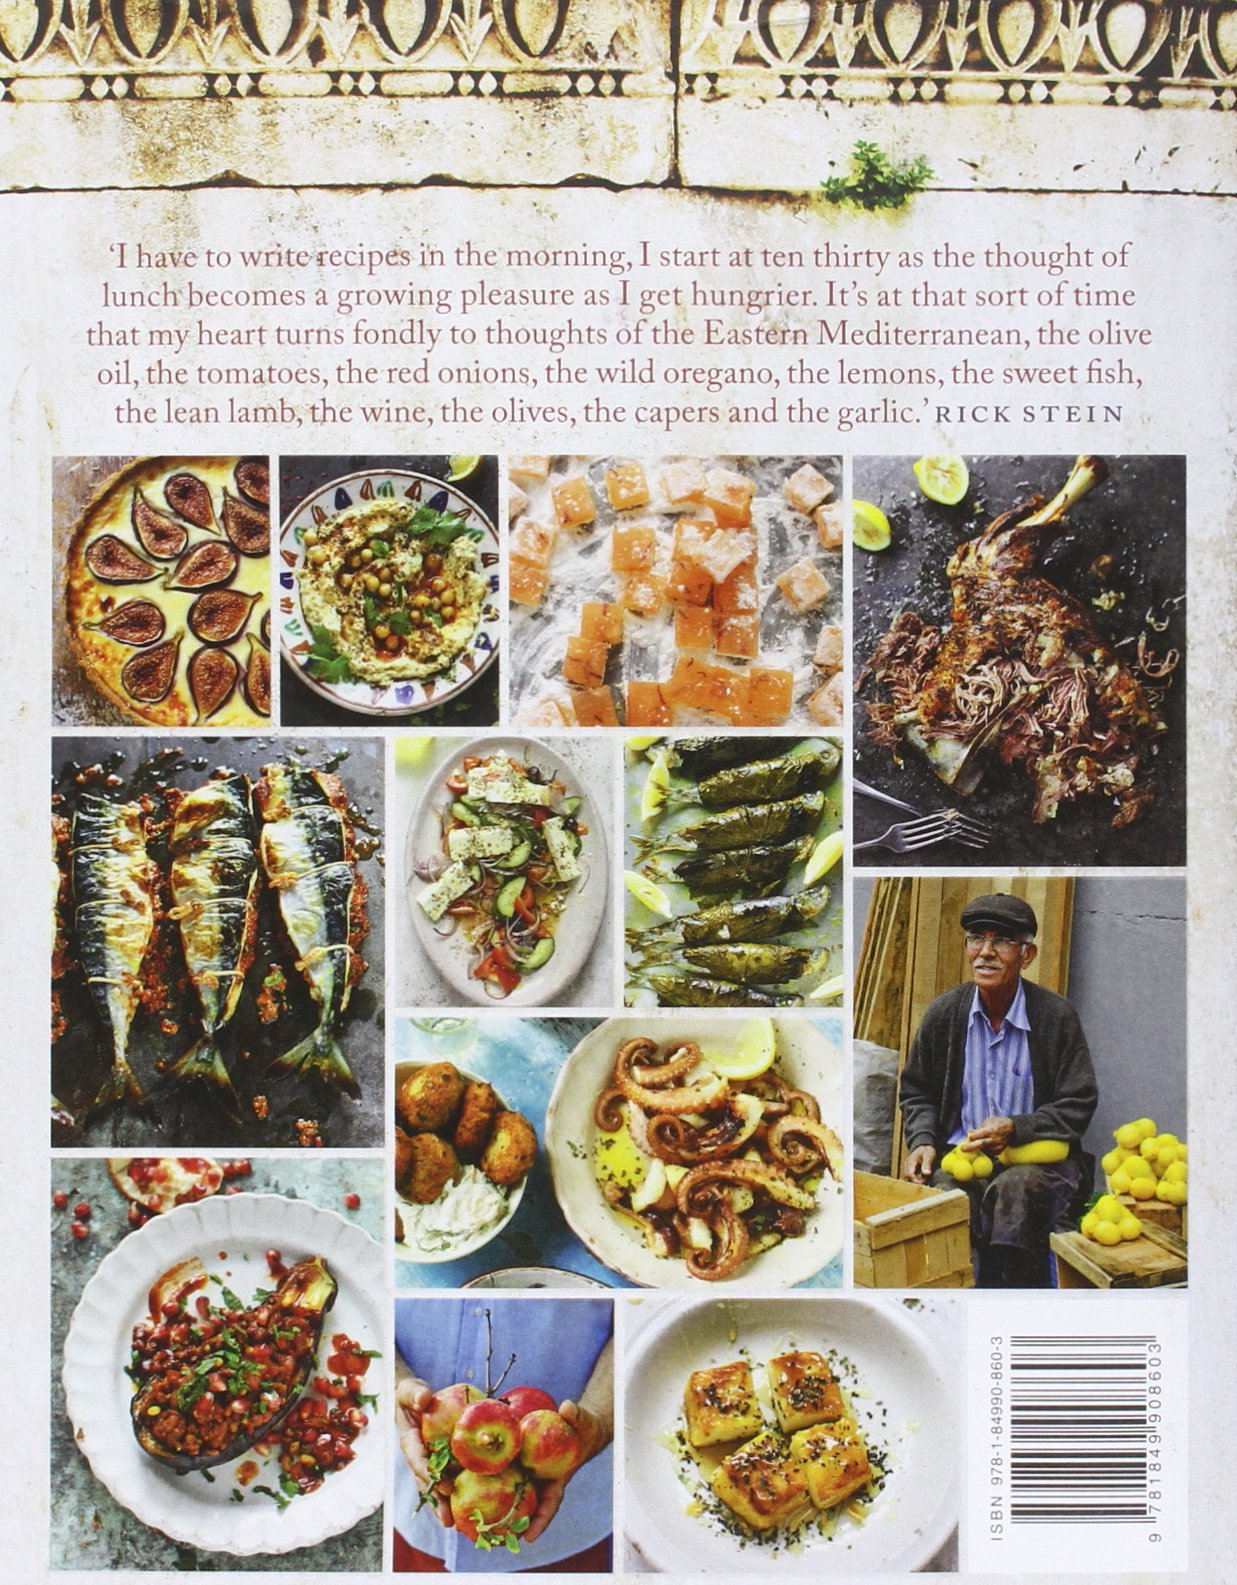 Rick stein from venice to istanbul amazon rick stein rick stein from venice to istanbul amazon rick stein 9781849908603 books forumfinder Images